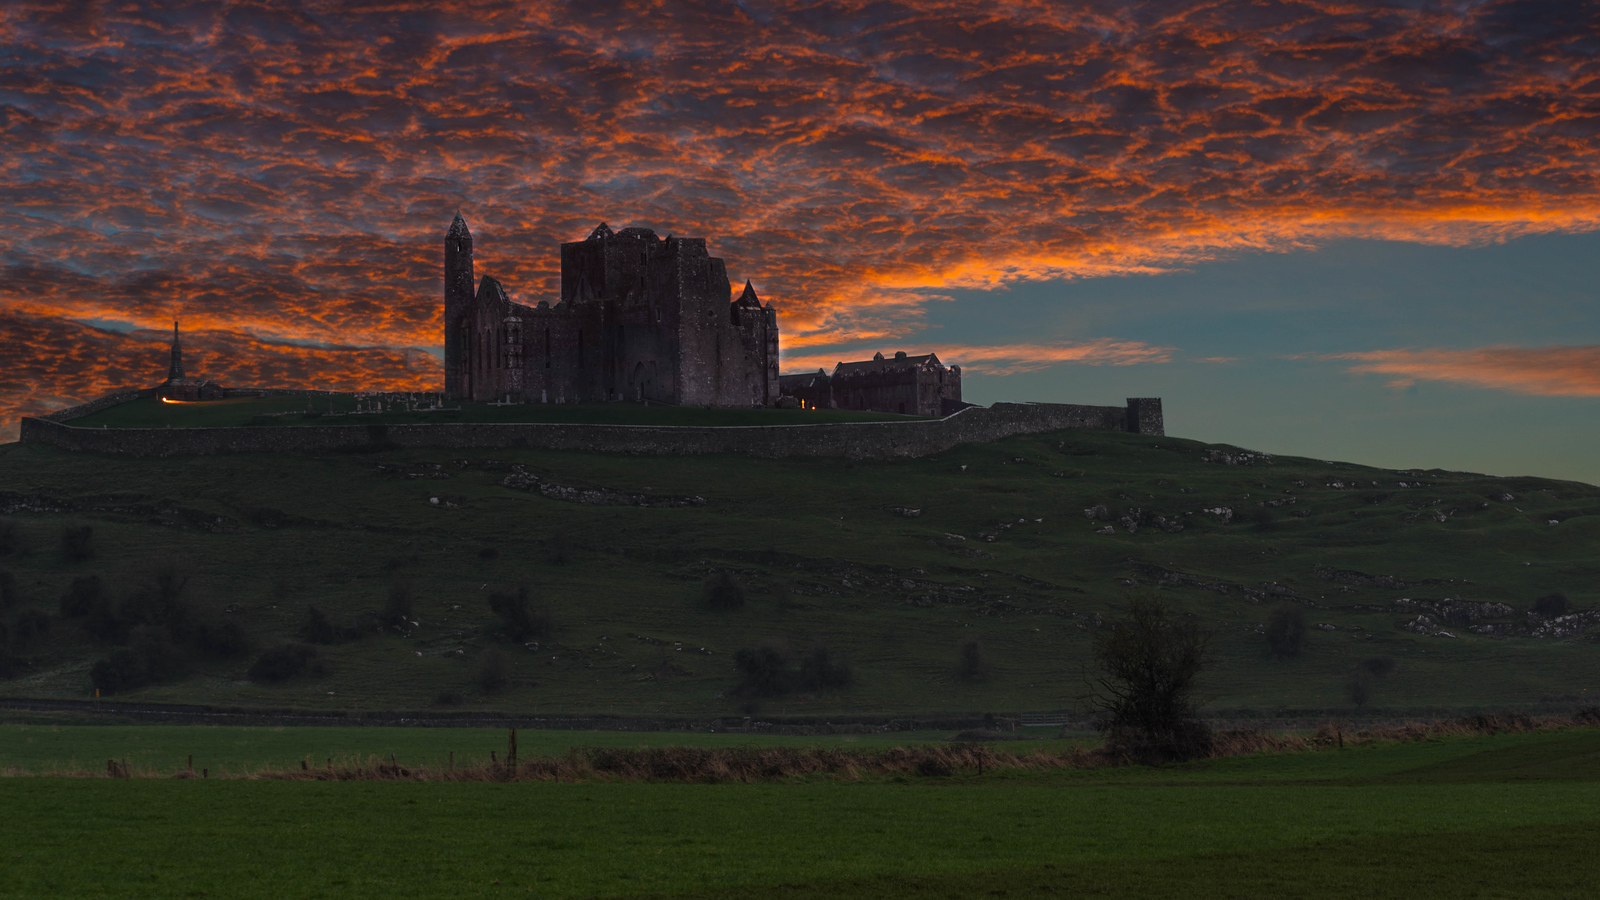 The Rock of Cashel in Ireland